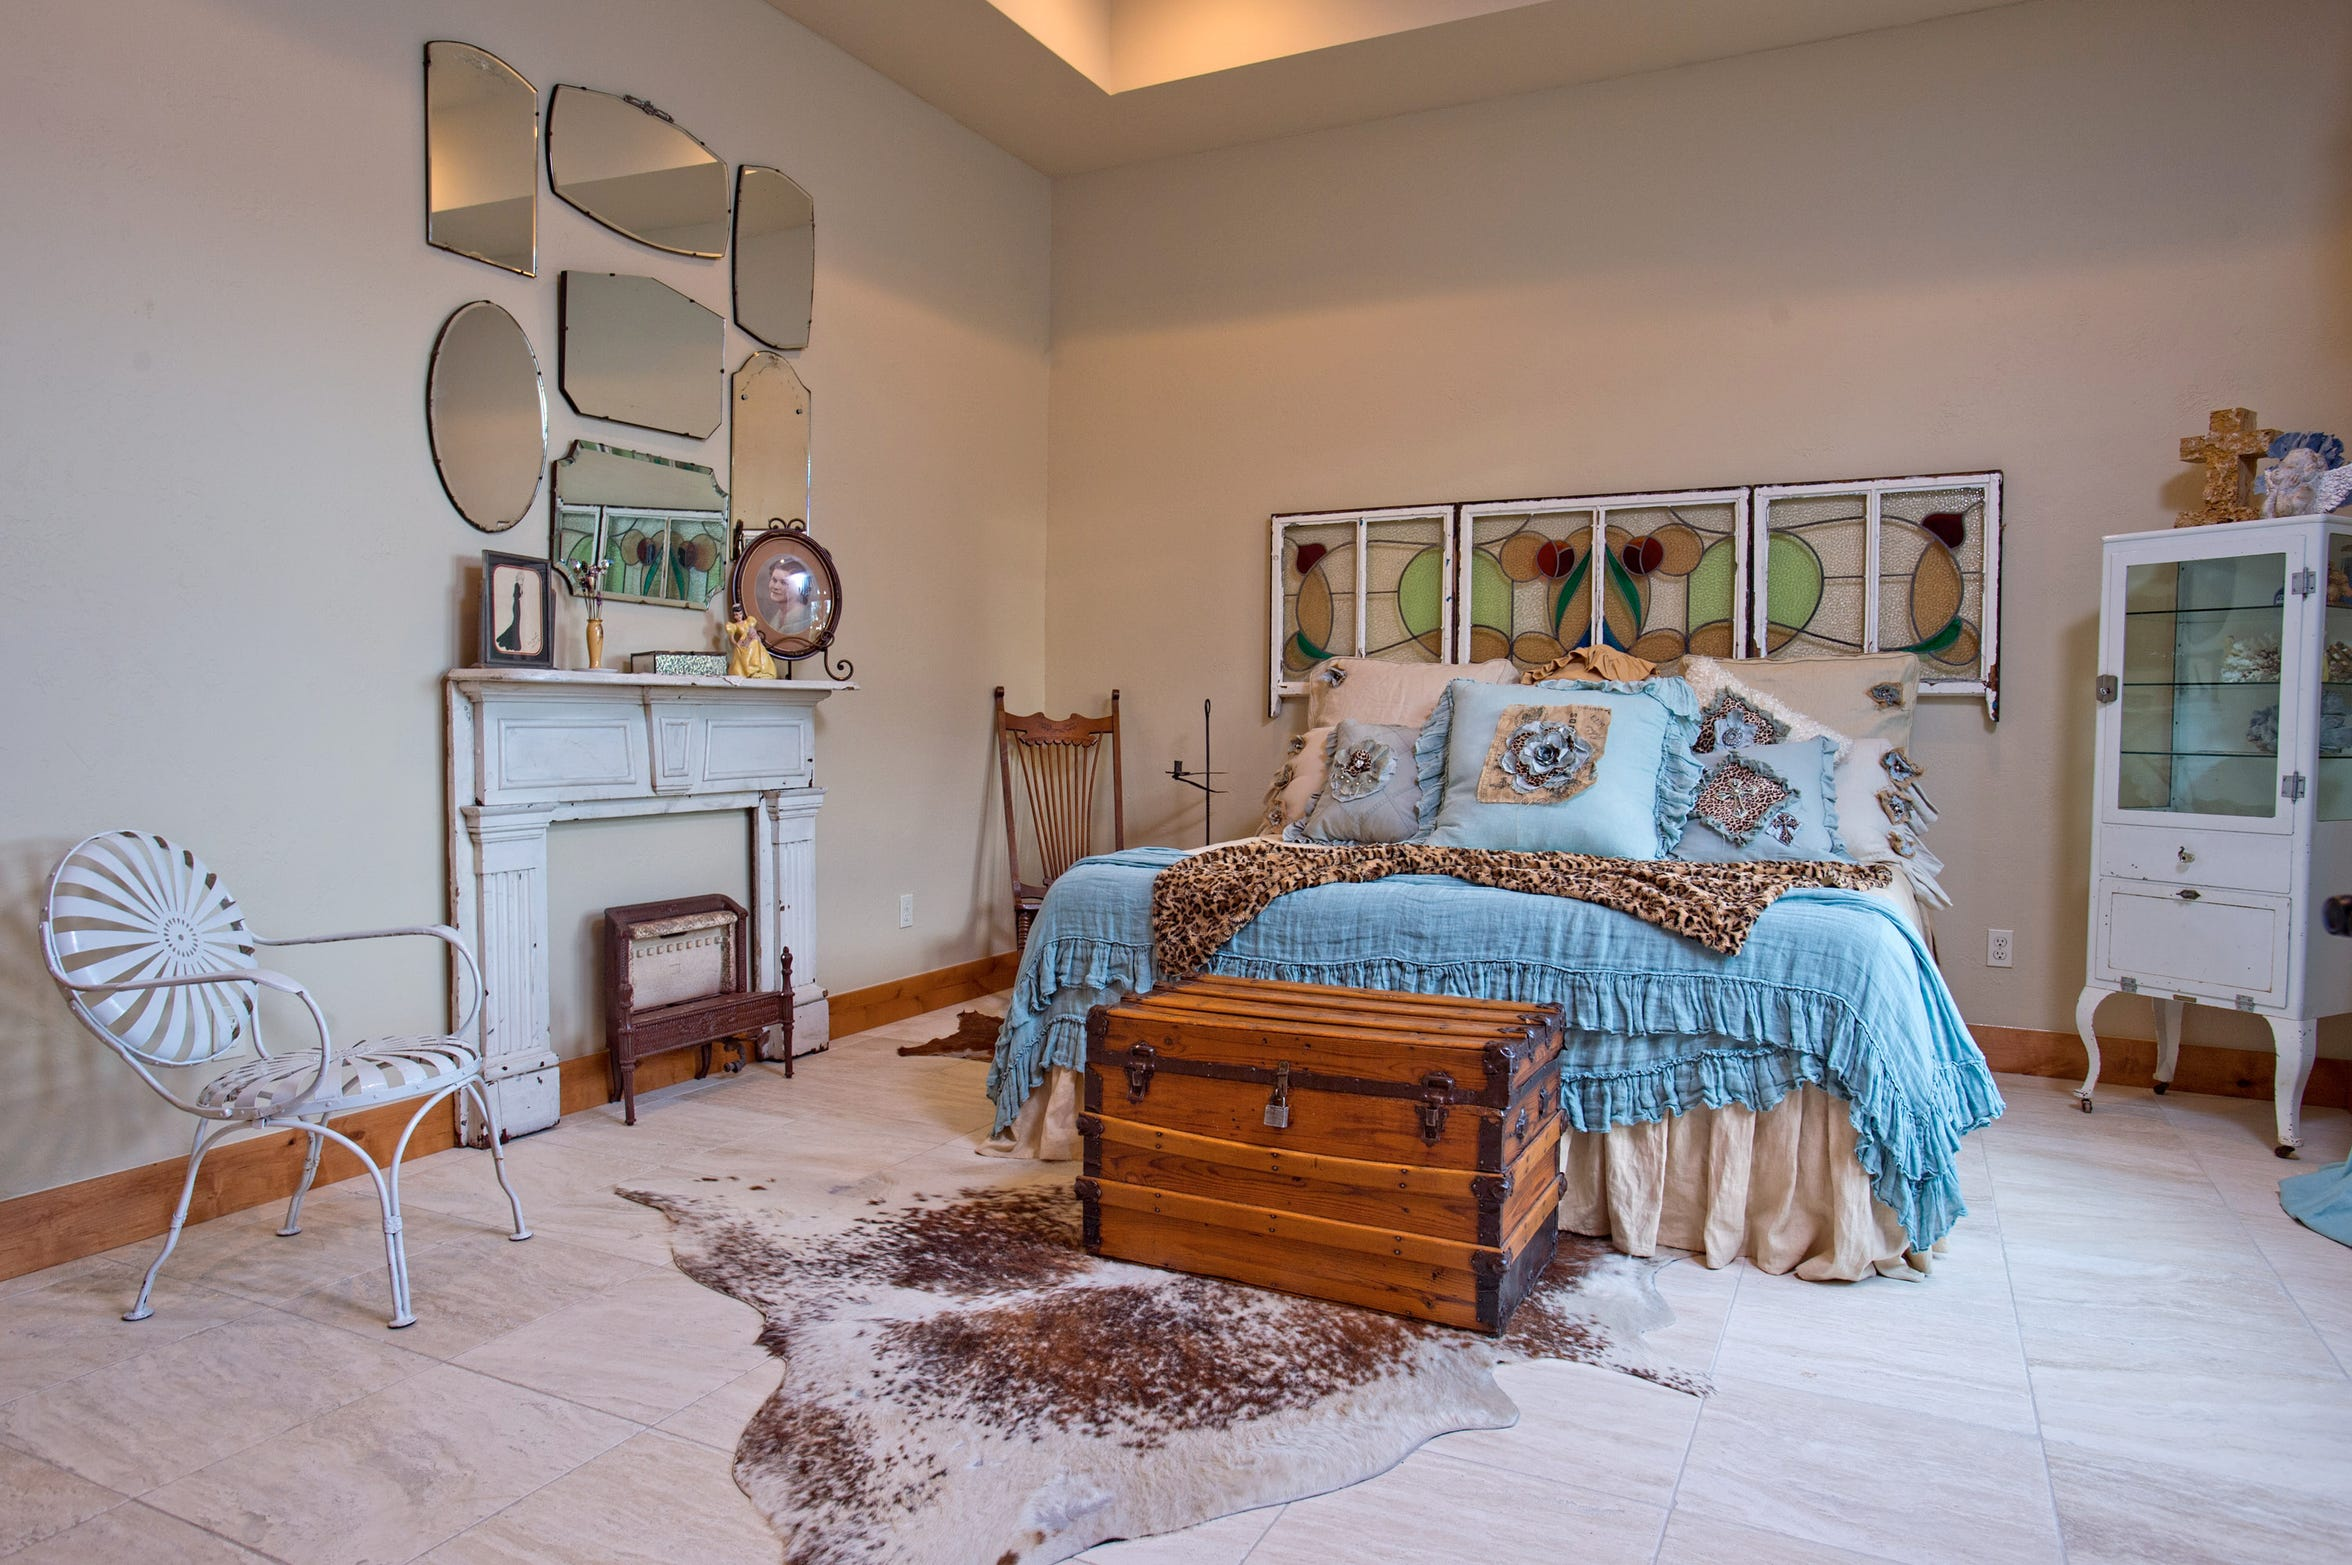 The eclectic tastes of the homeowners is evident in this antiques filled guest room